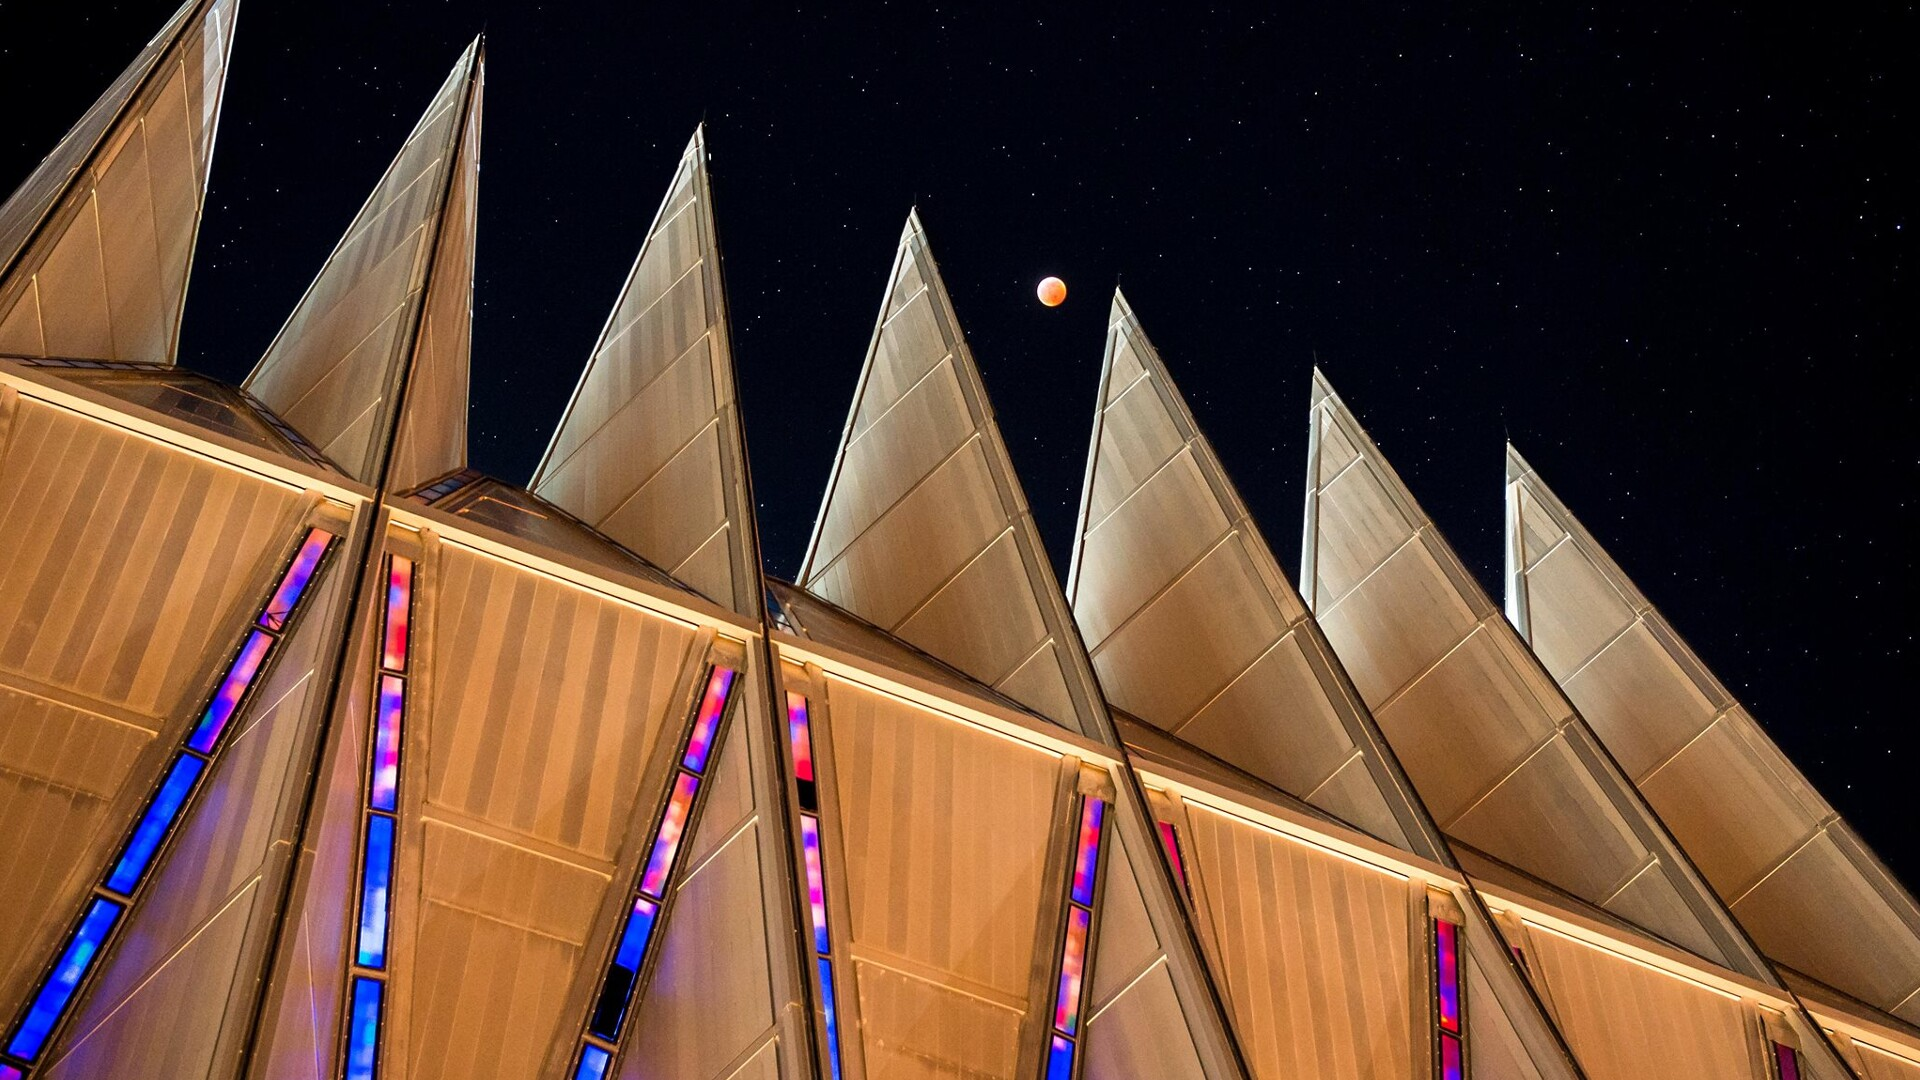 Super Blood Wolf Moon Cadet Chapel U.S Air Force Trevor Cokley.jpg